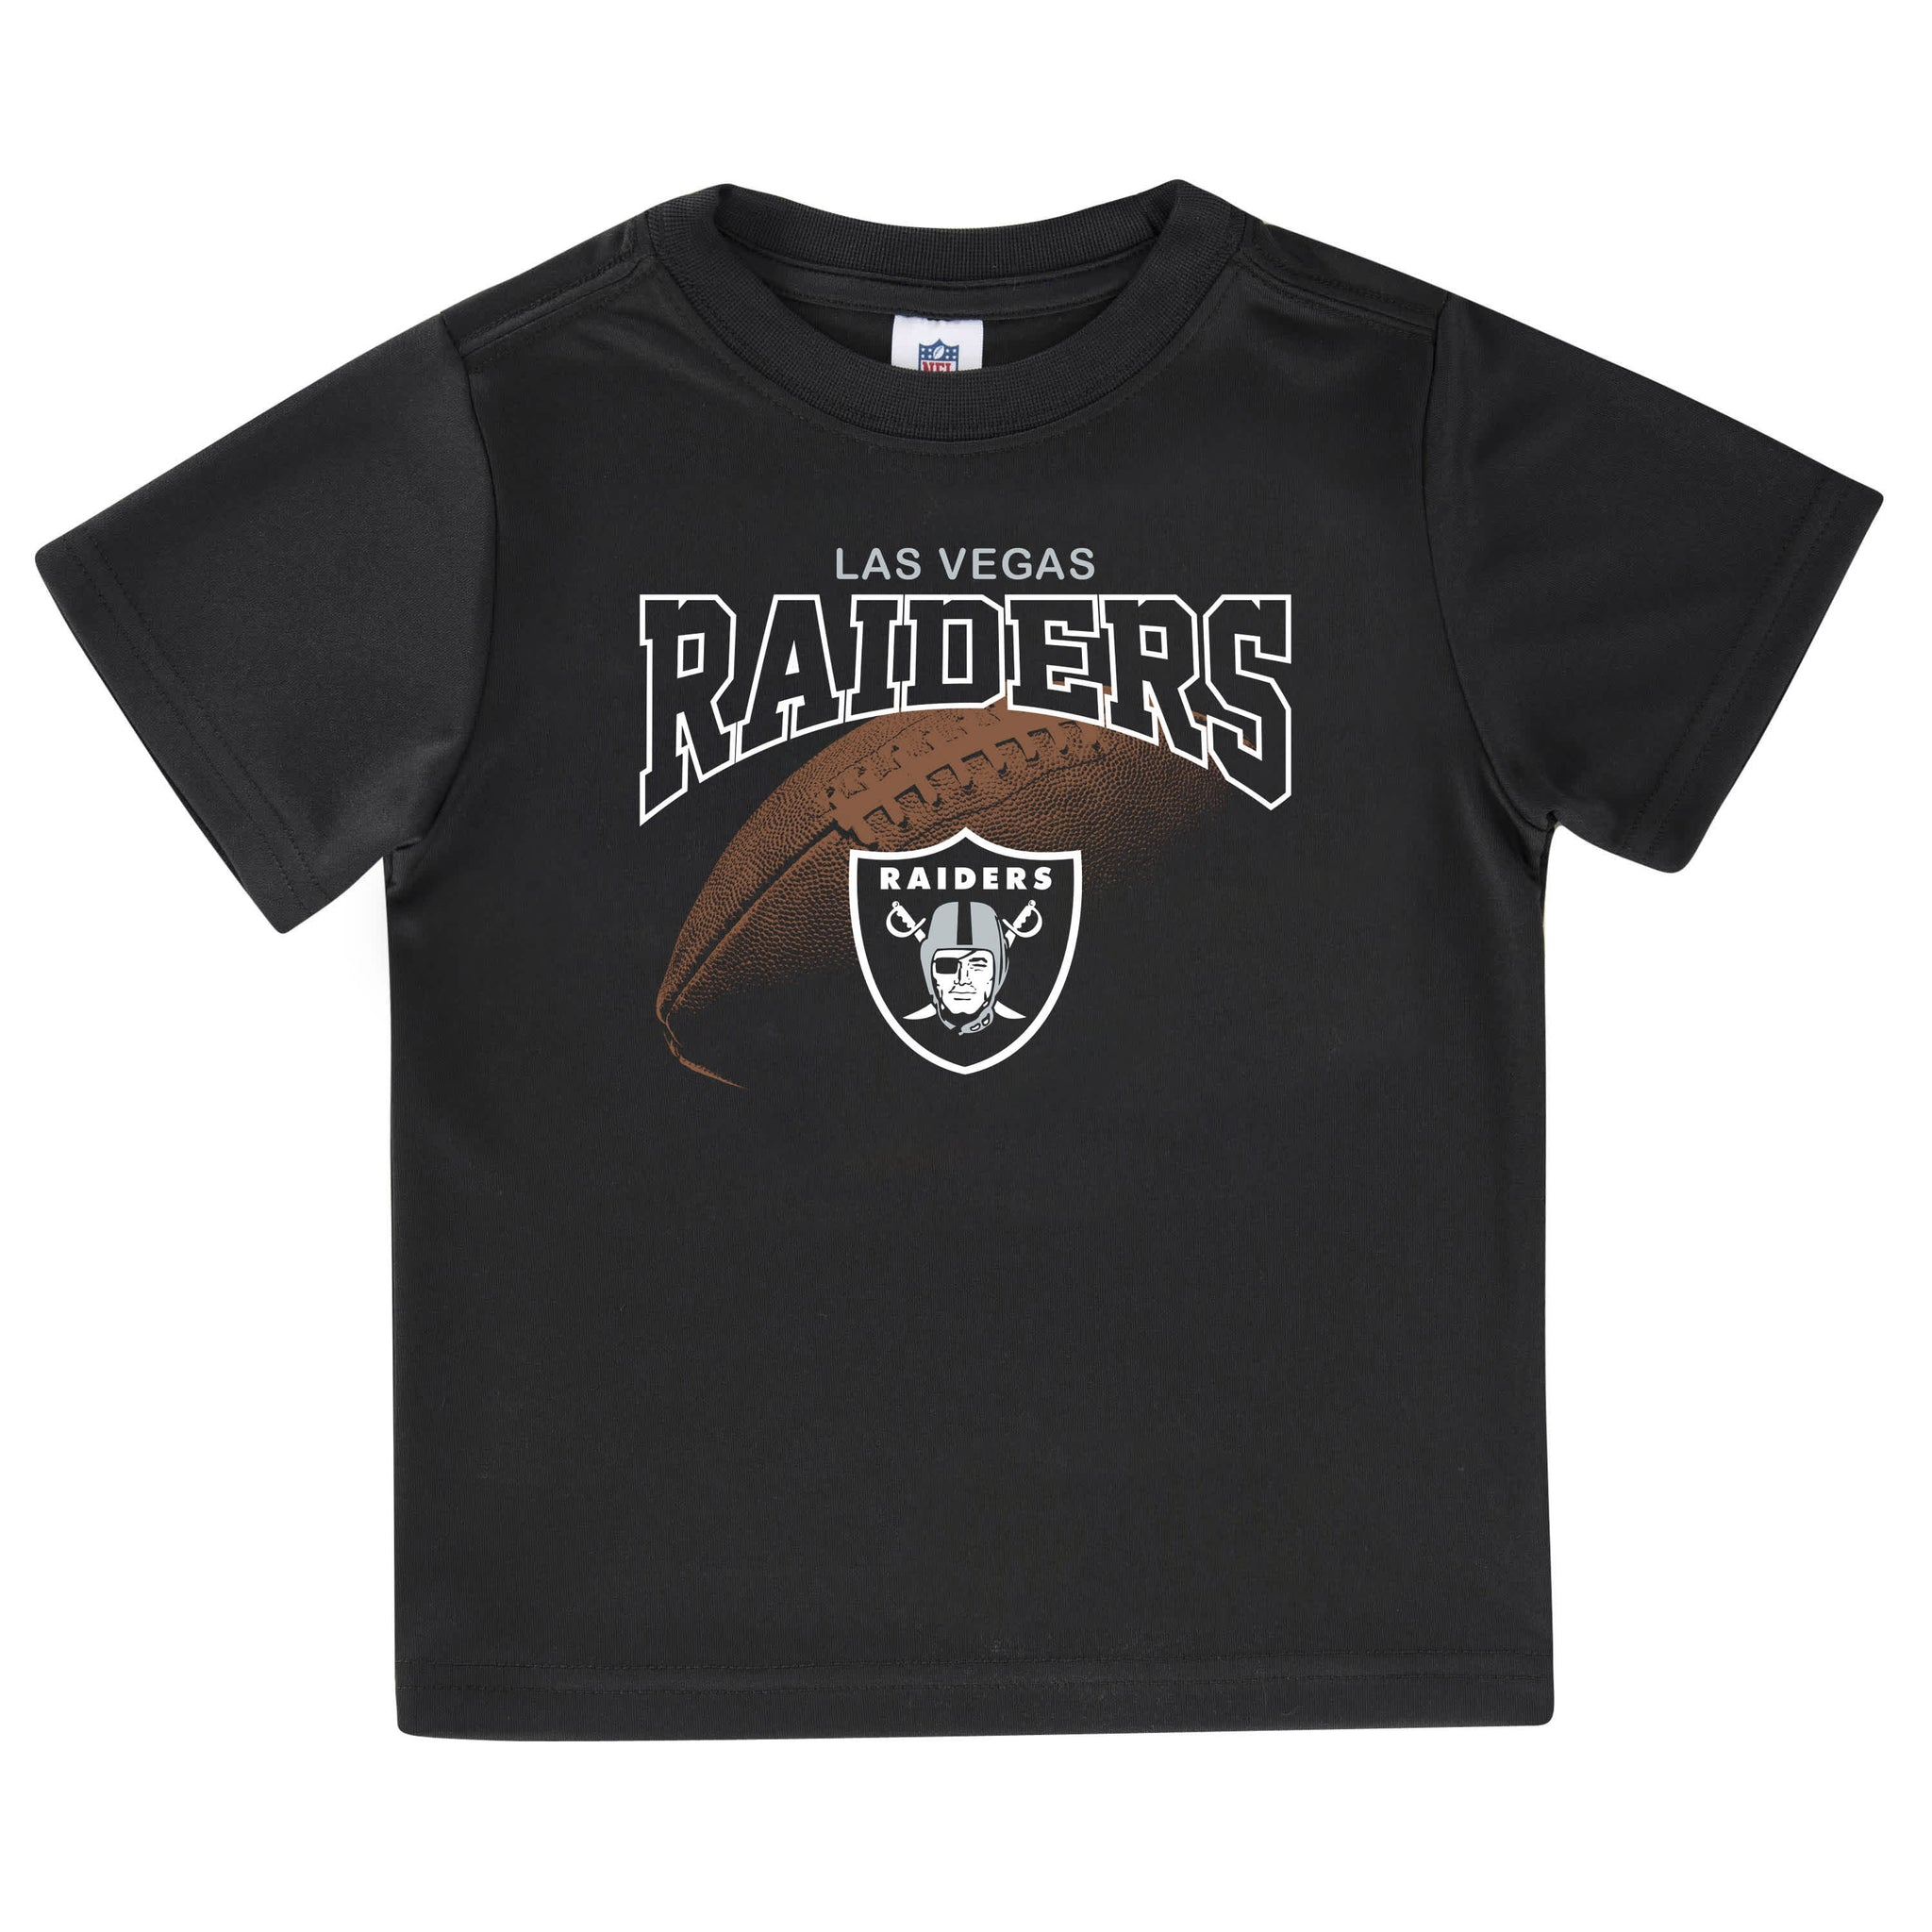 Las Vegas Raiders Baby Boys Tee Shirt-Gerber Childrenswear